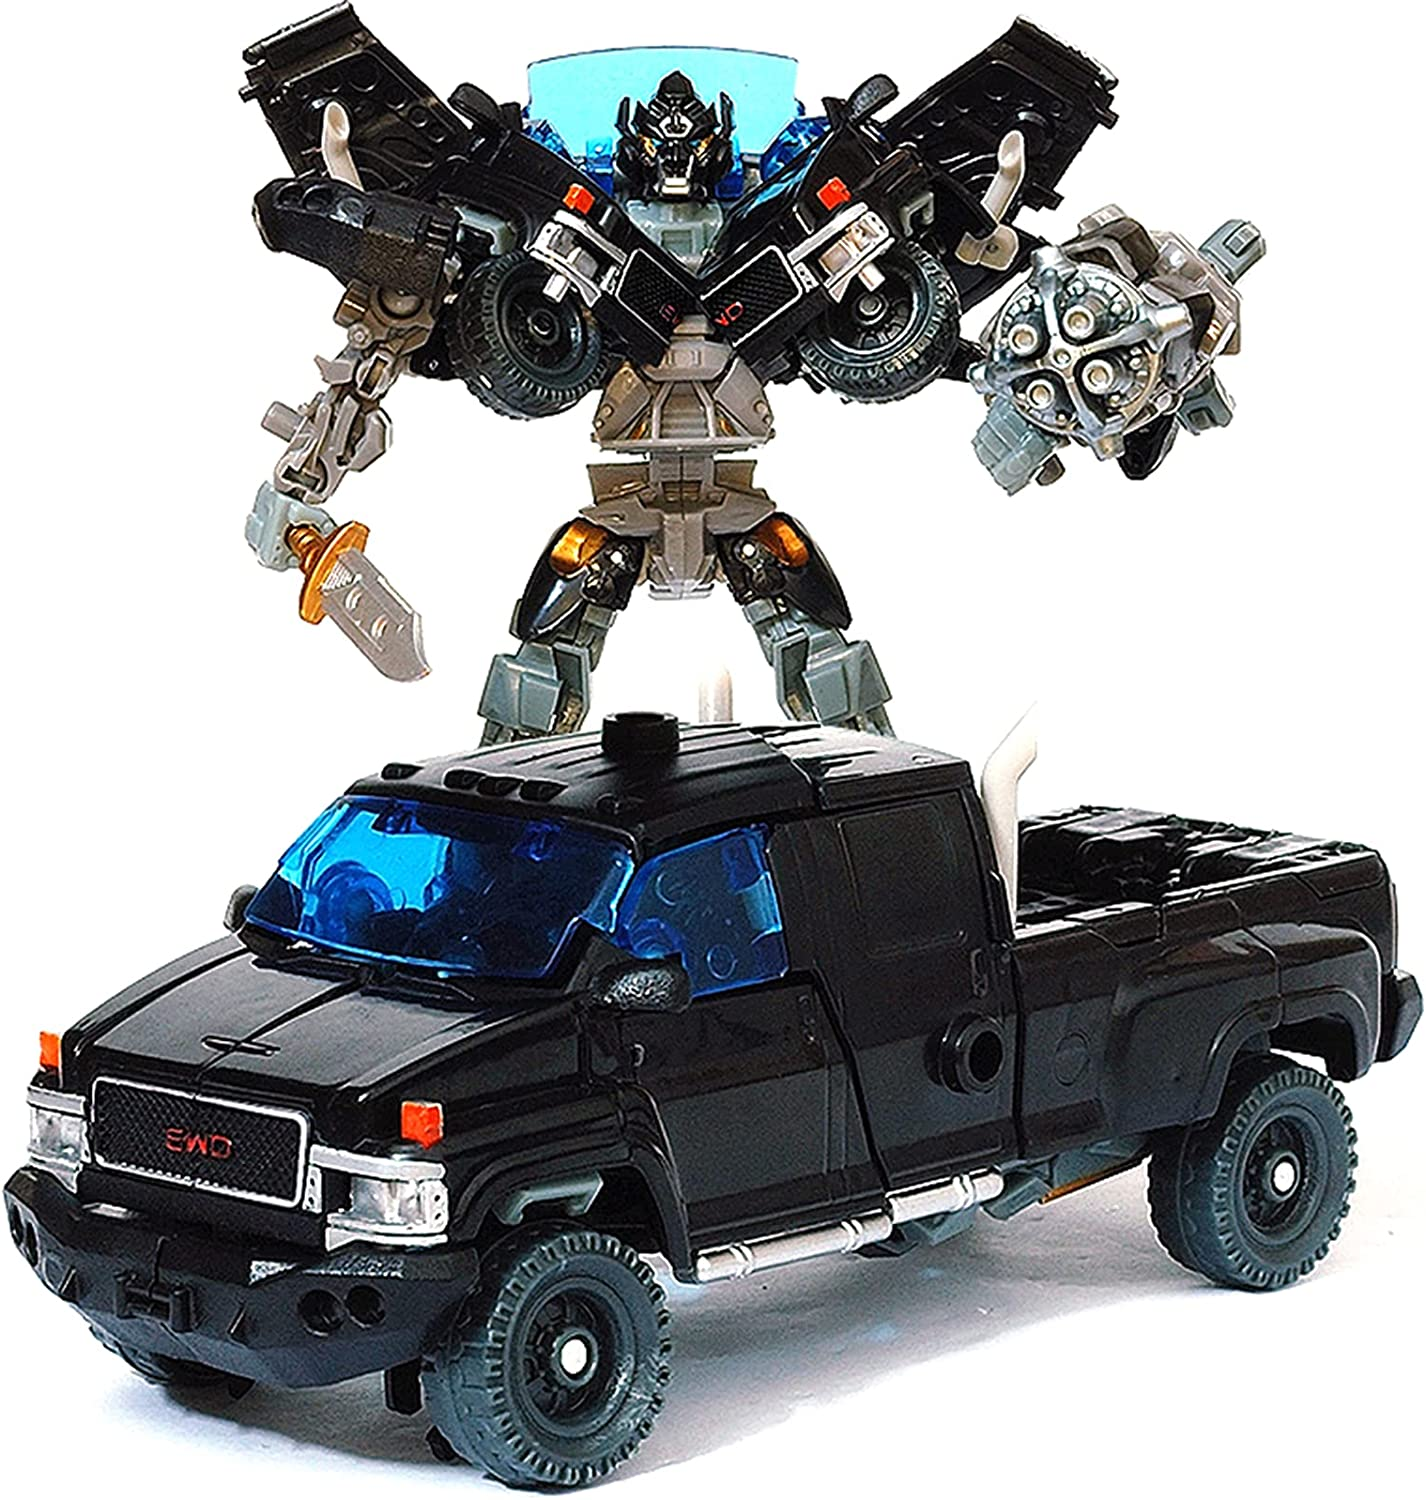 Pinkyee Transformers Toys-Ironhide Toys New life Max 83% OFF Decepticons